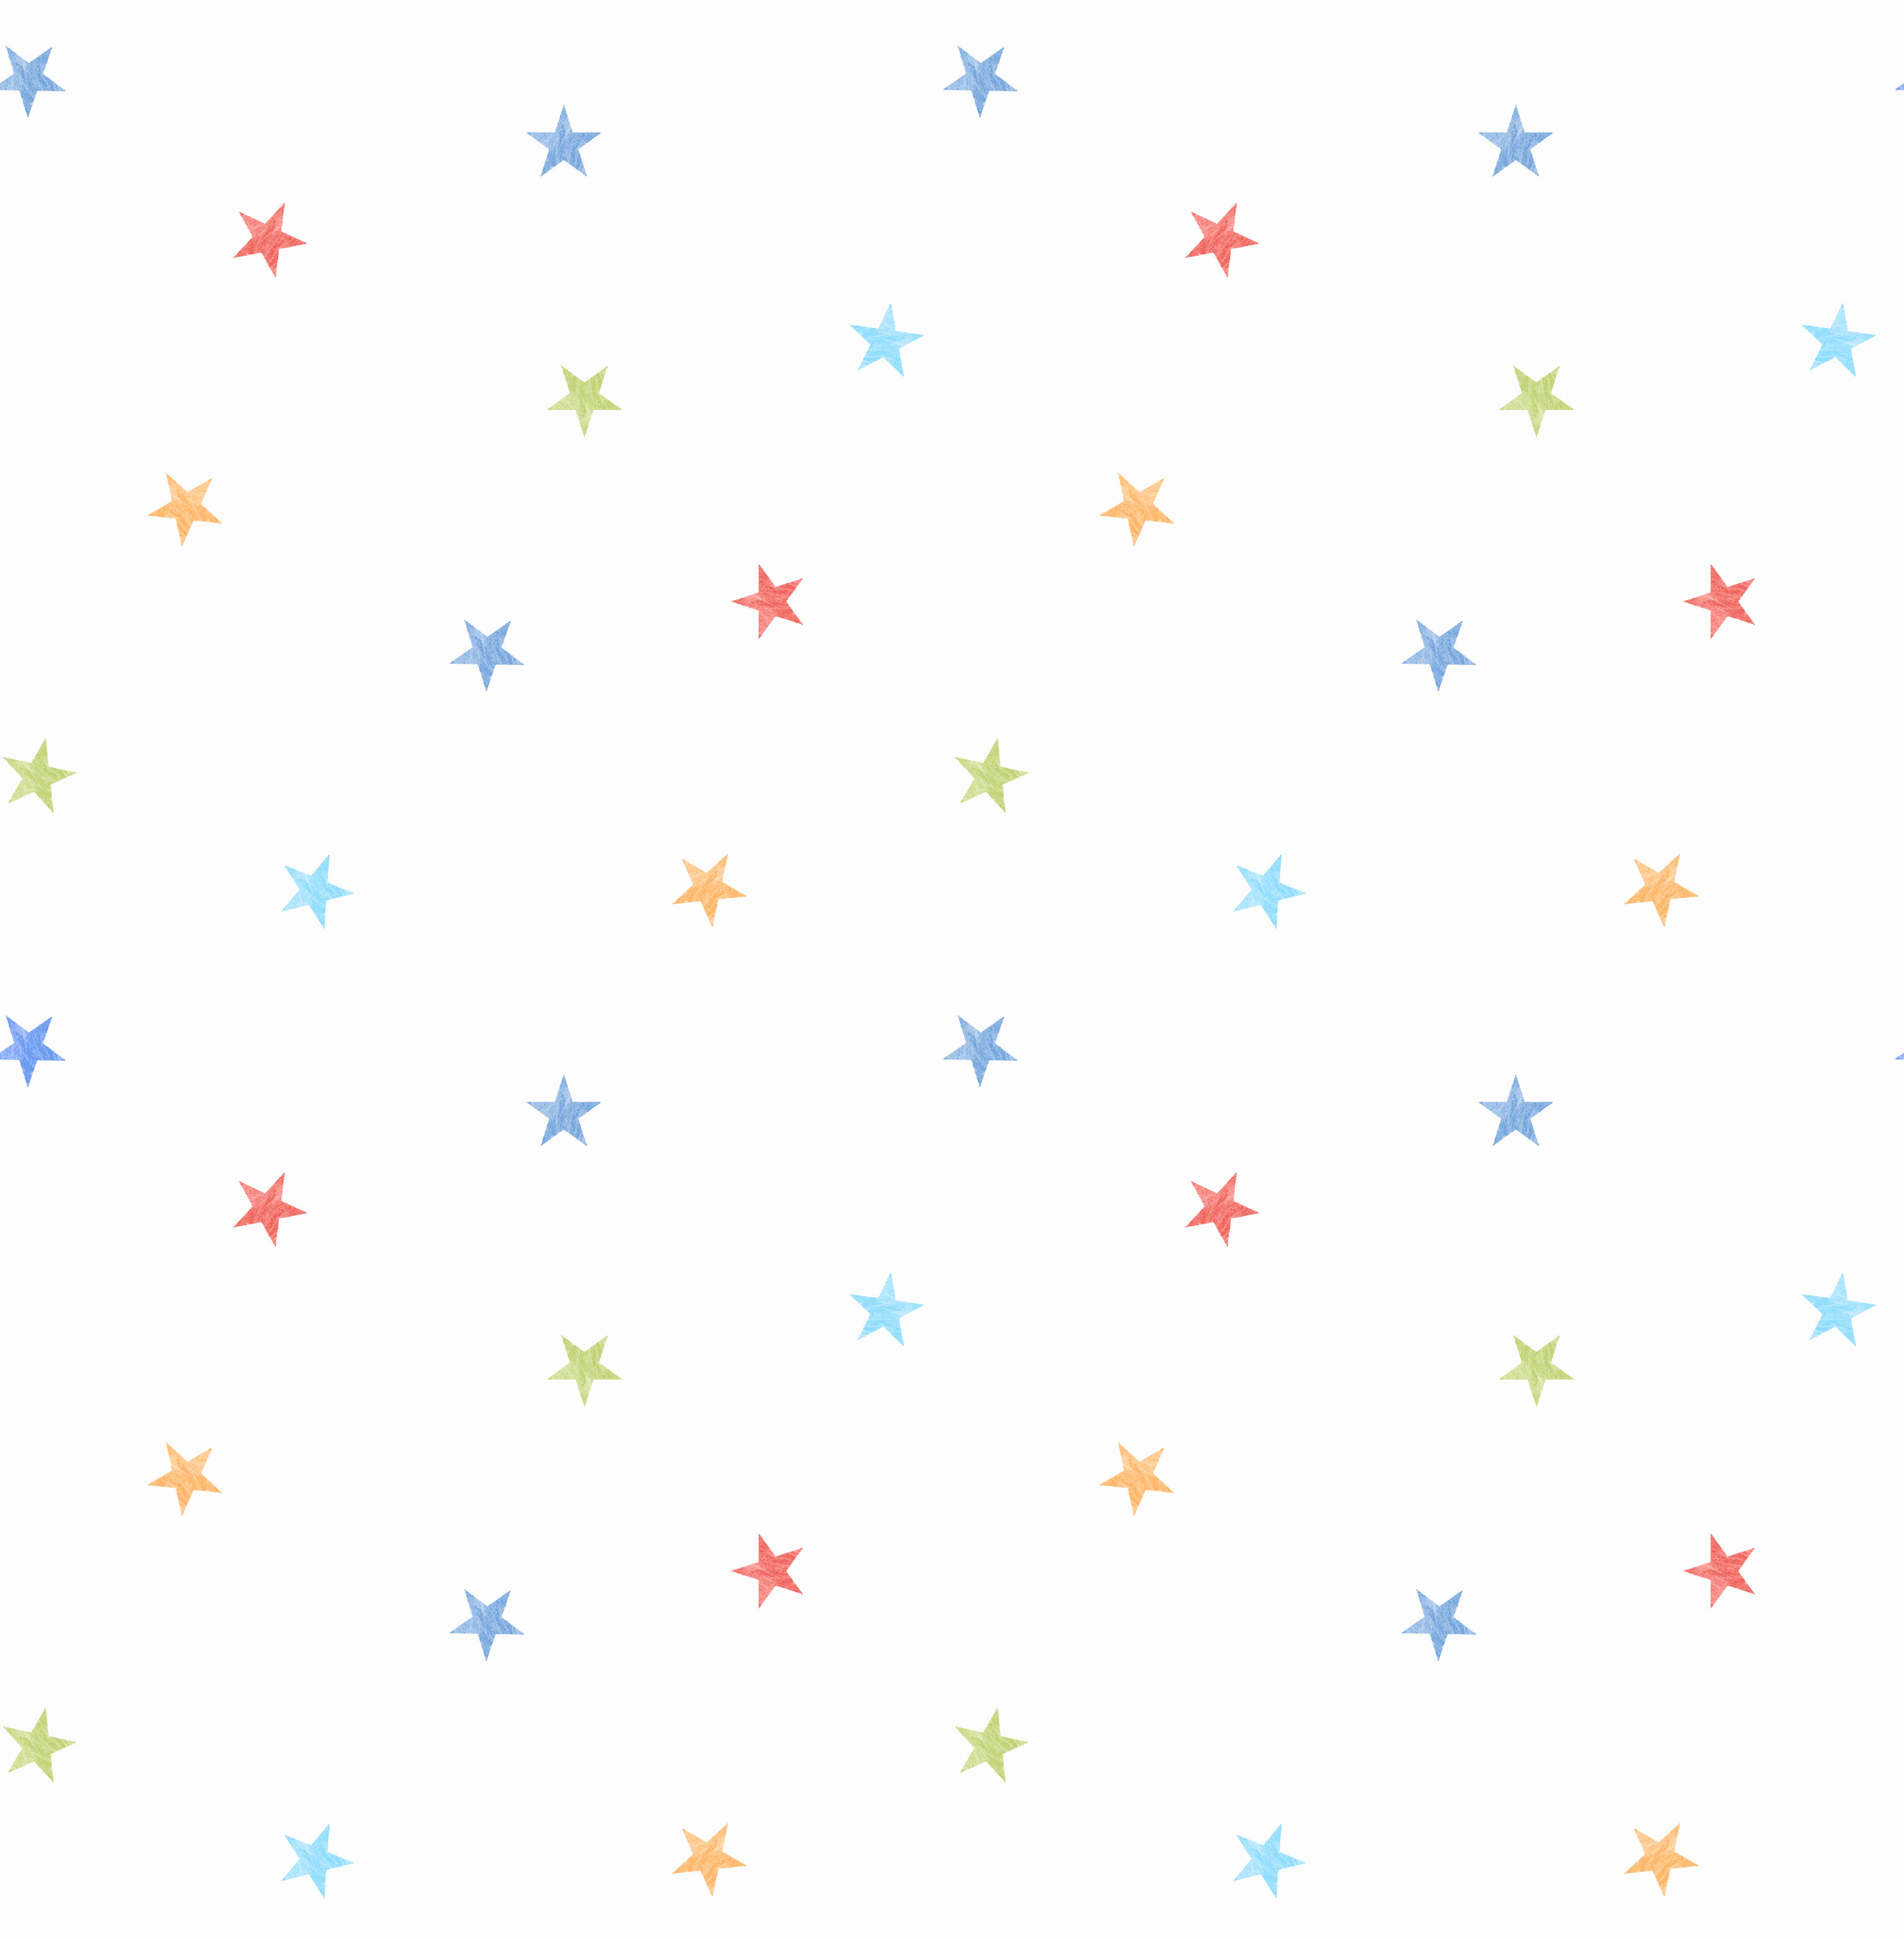 Fine Decor Fun4Walls Stars Wallpaper FD40277 Cut Price